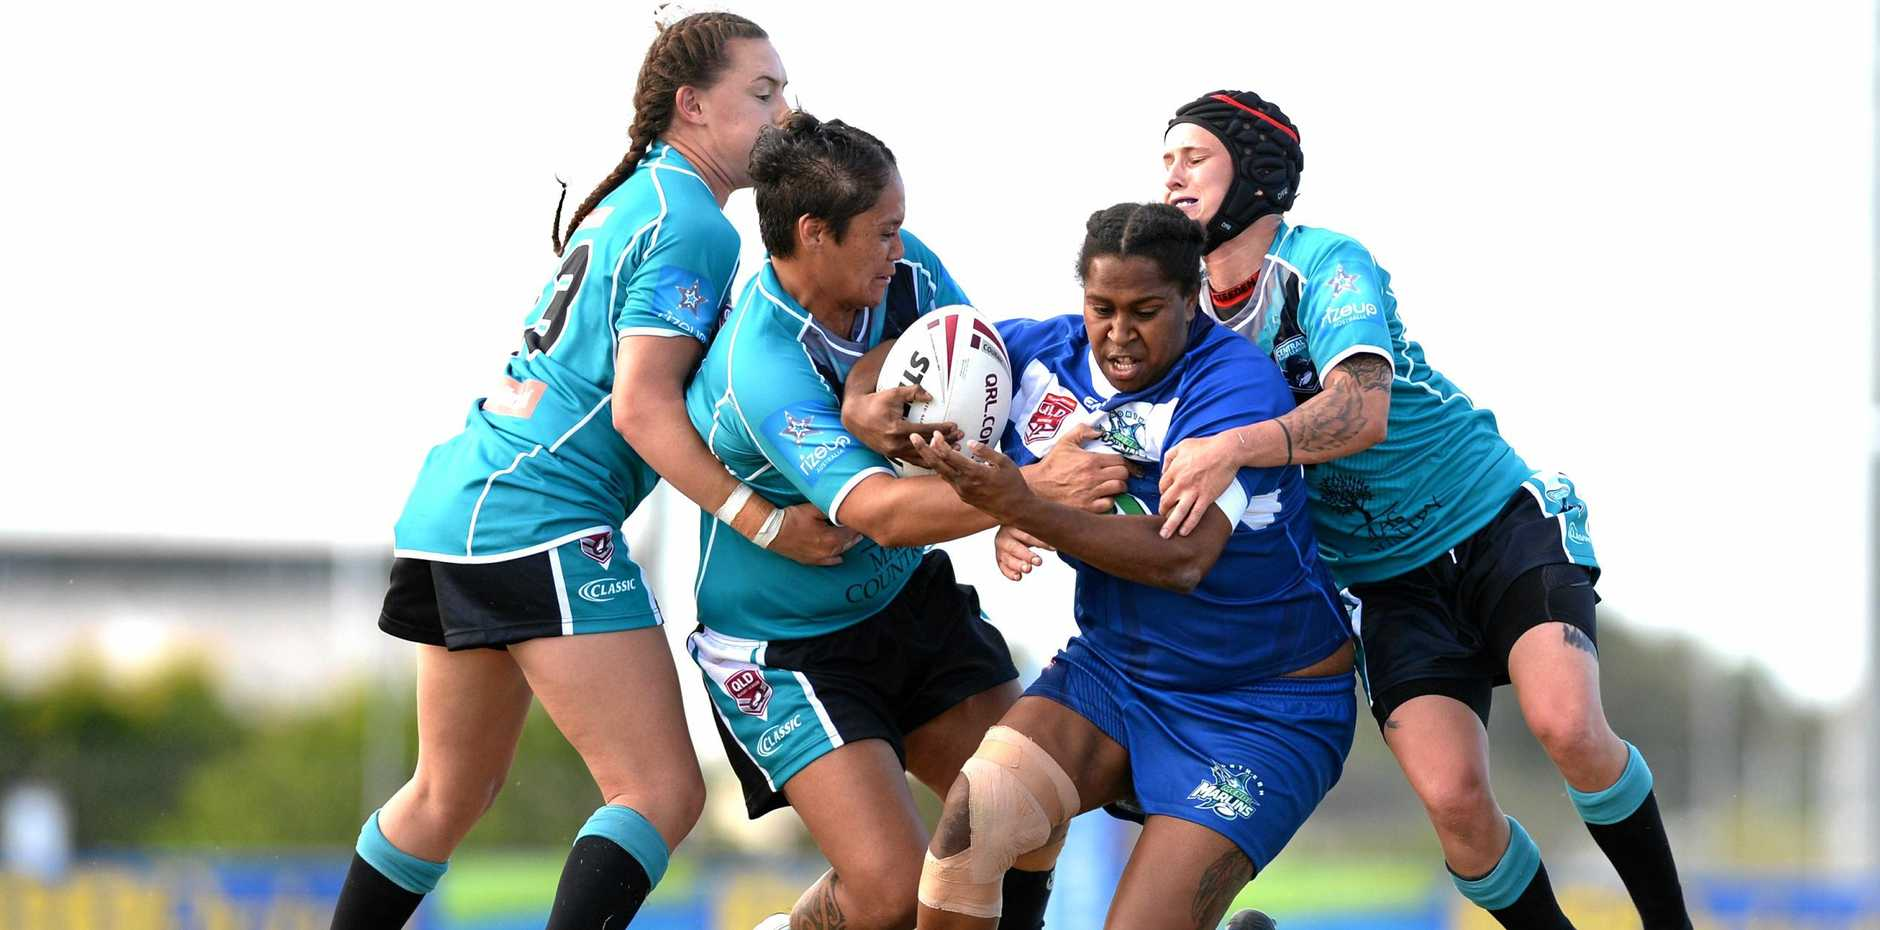 North Queensland Marlins versus the Central Queensland Crows in the women's Queensland Country rugby league Trials at BB Print Stadium, Mackay on Saturday, May 20, 2018.